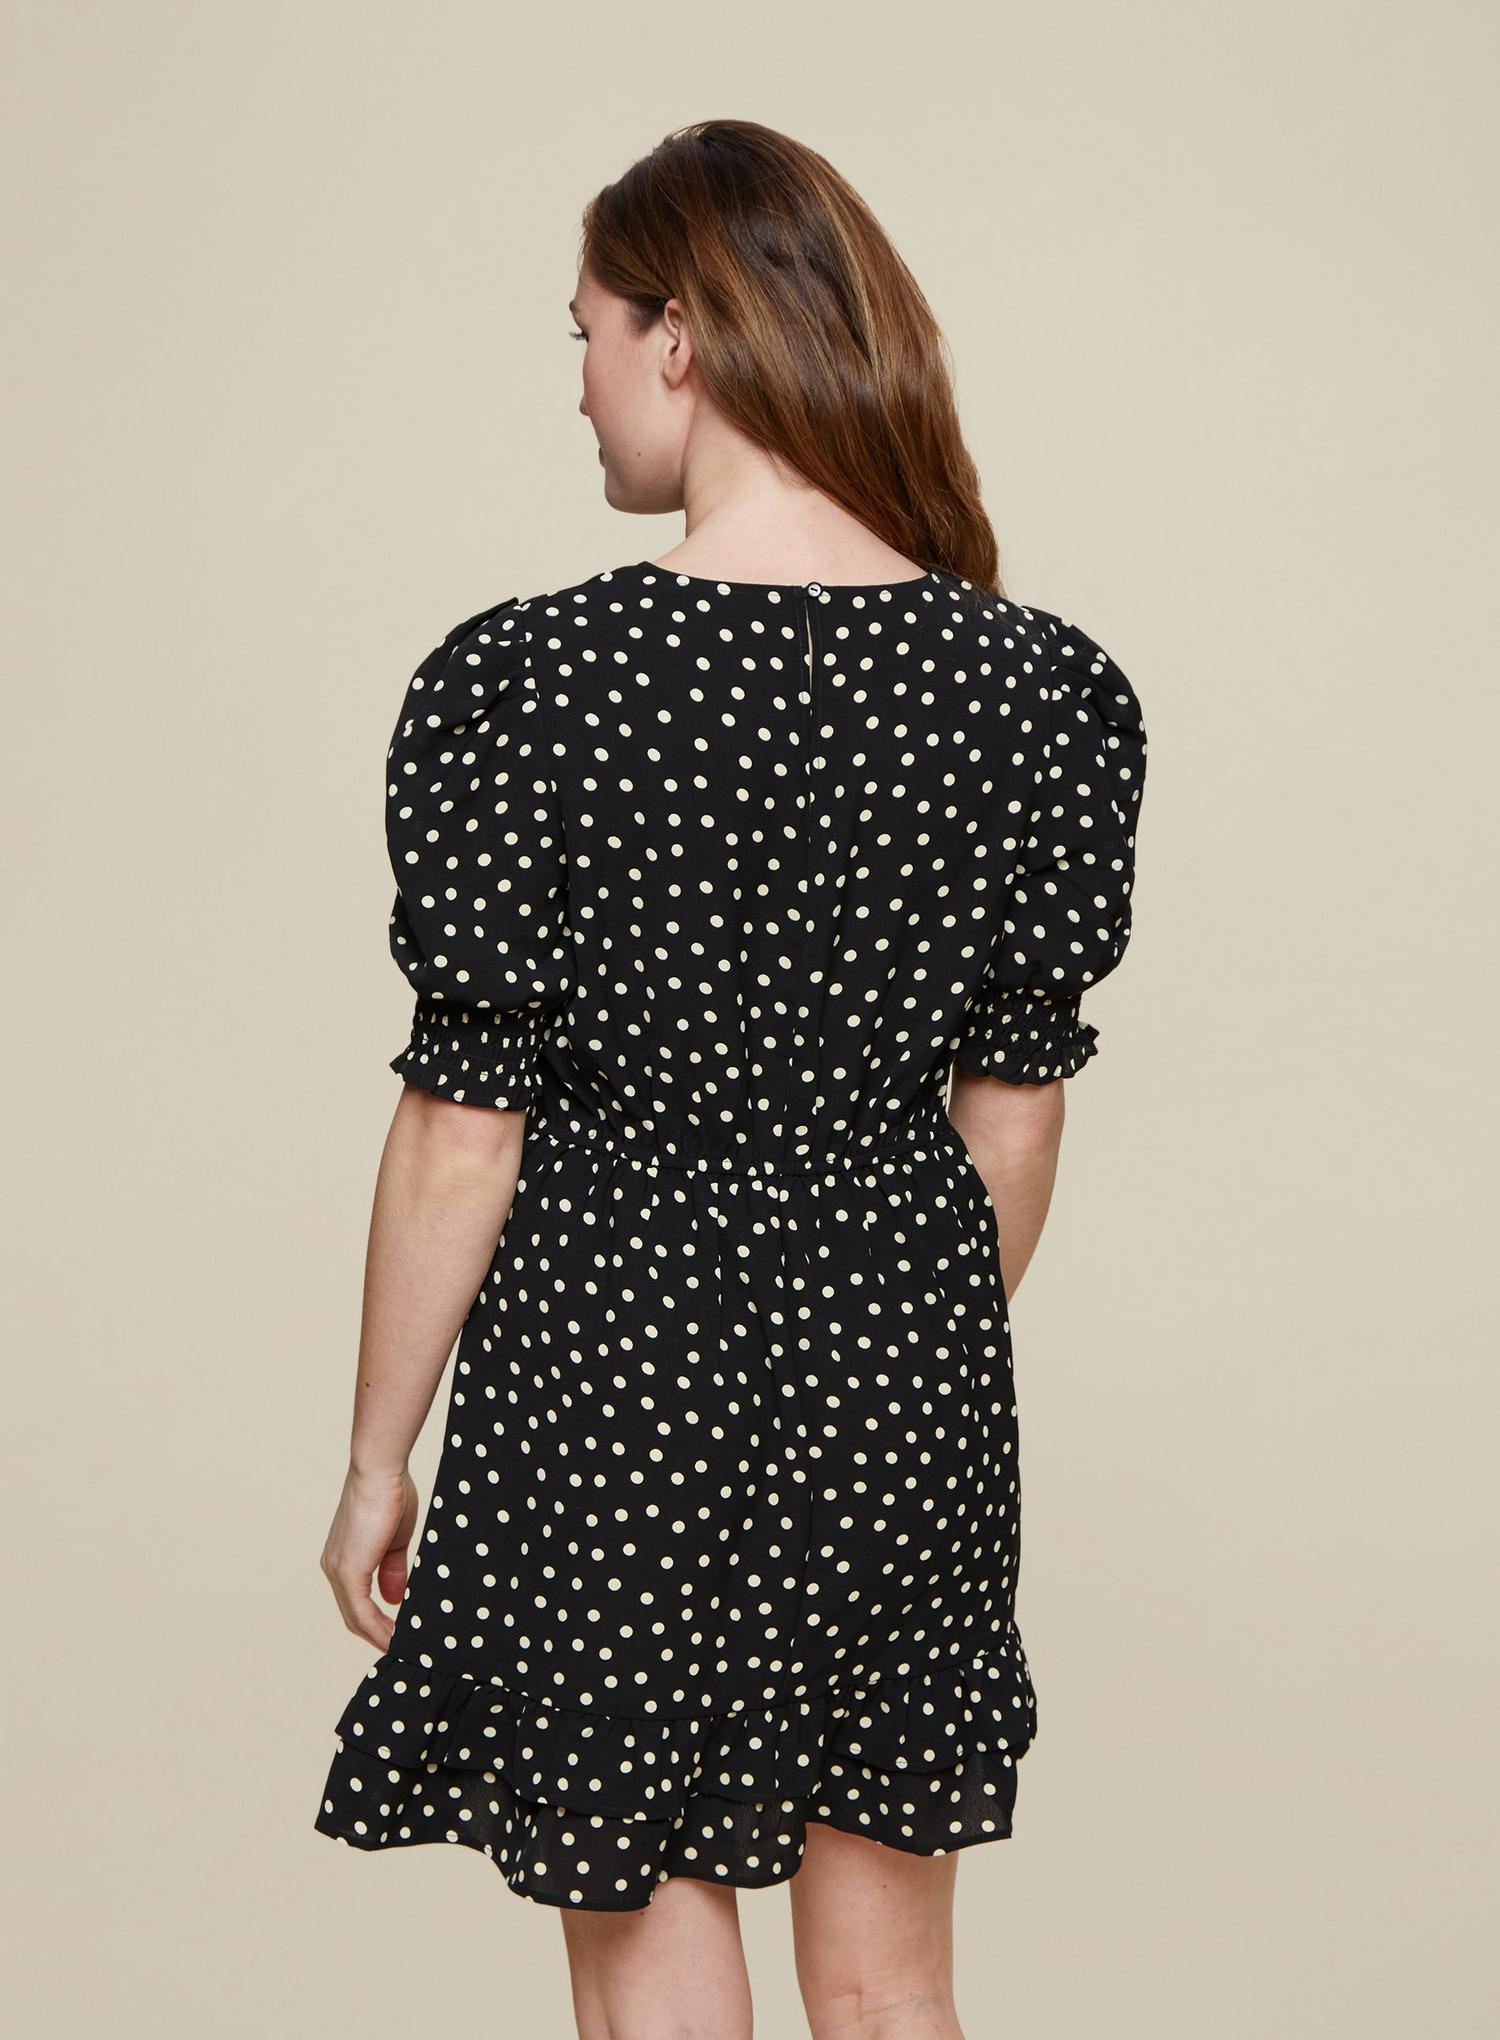 105 Black Spot Print Frill Hem Mini Dress image number 4